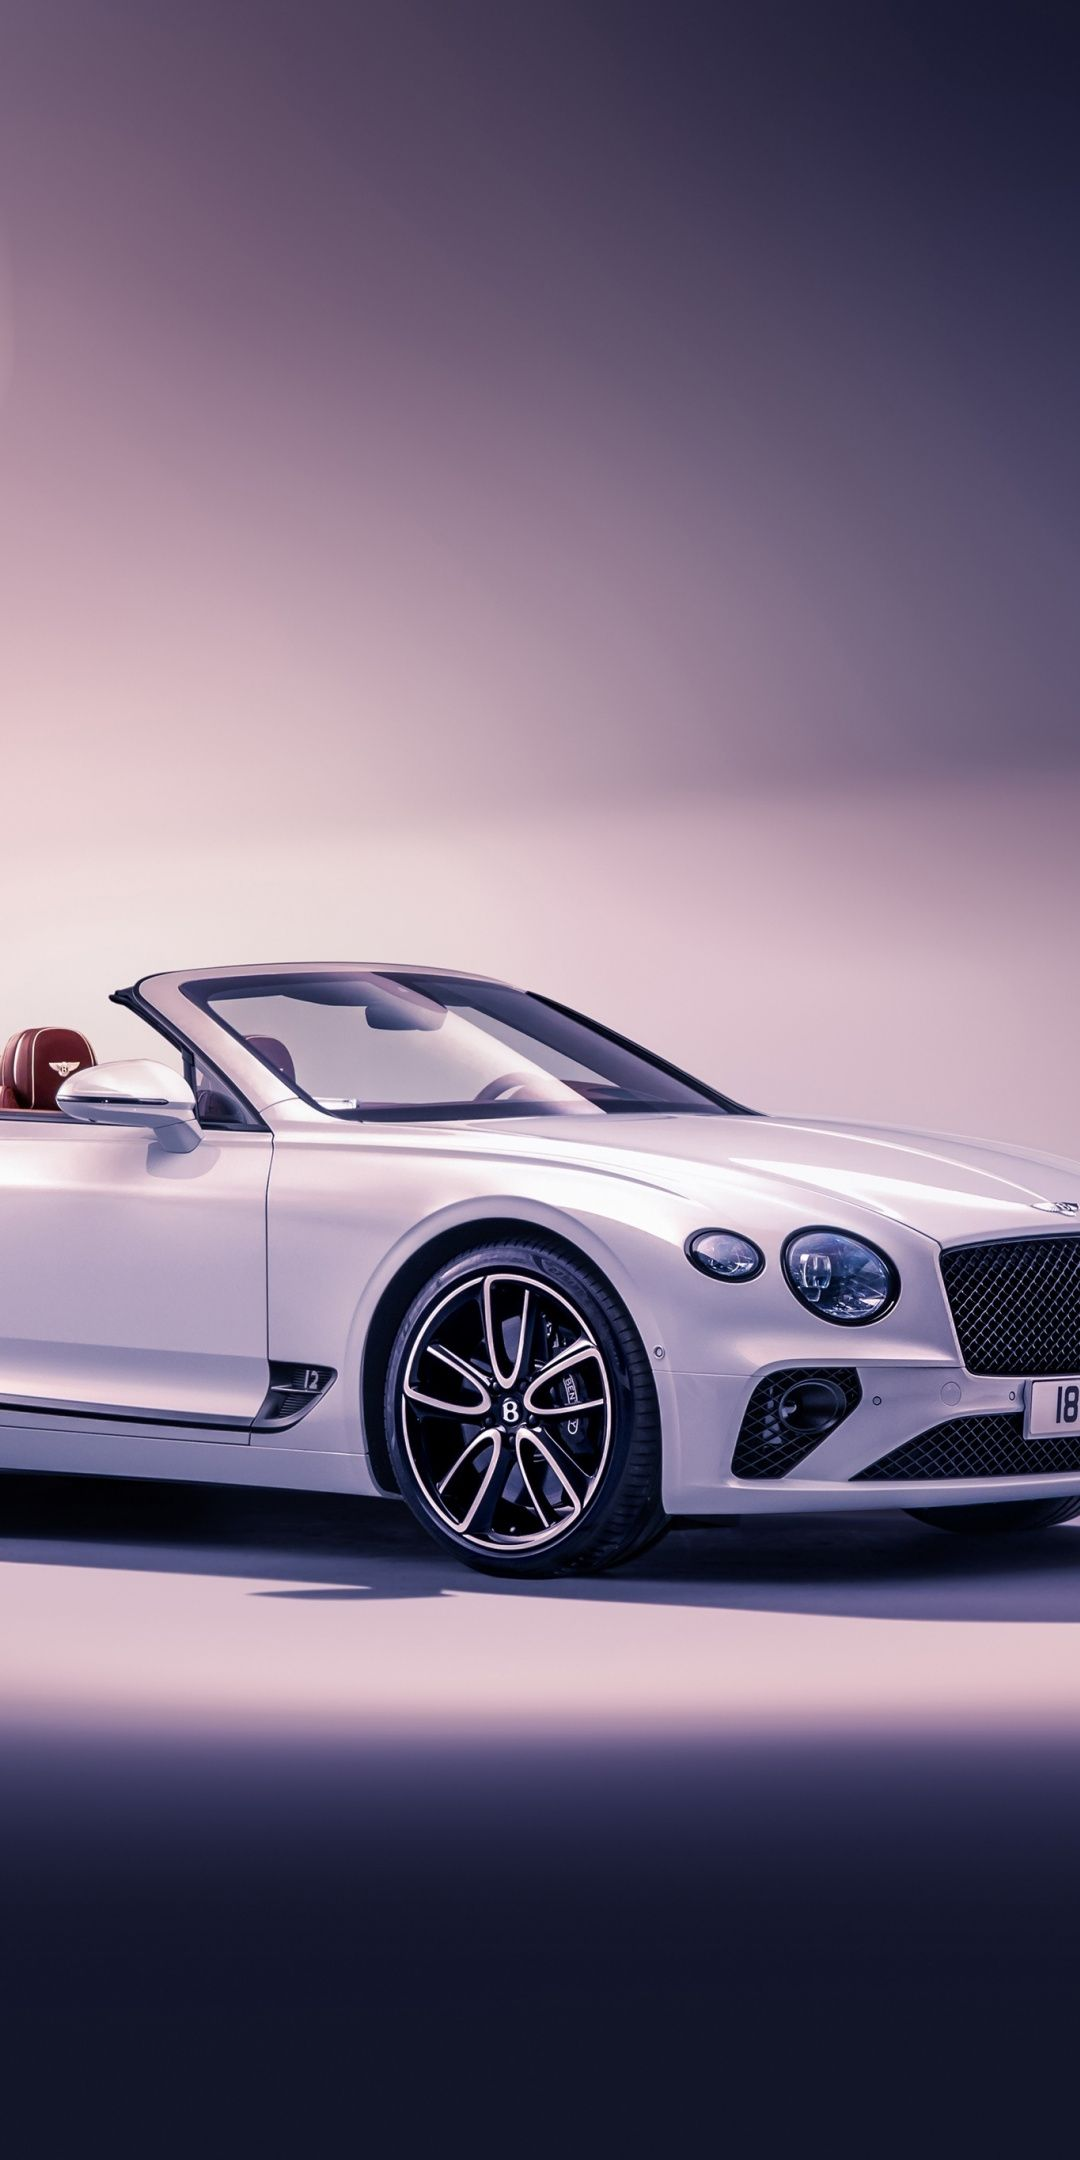 Luxury Vehicle White Bentley Continental Gt 1080x2160 Wallpaper